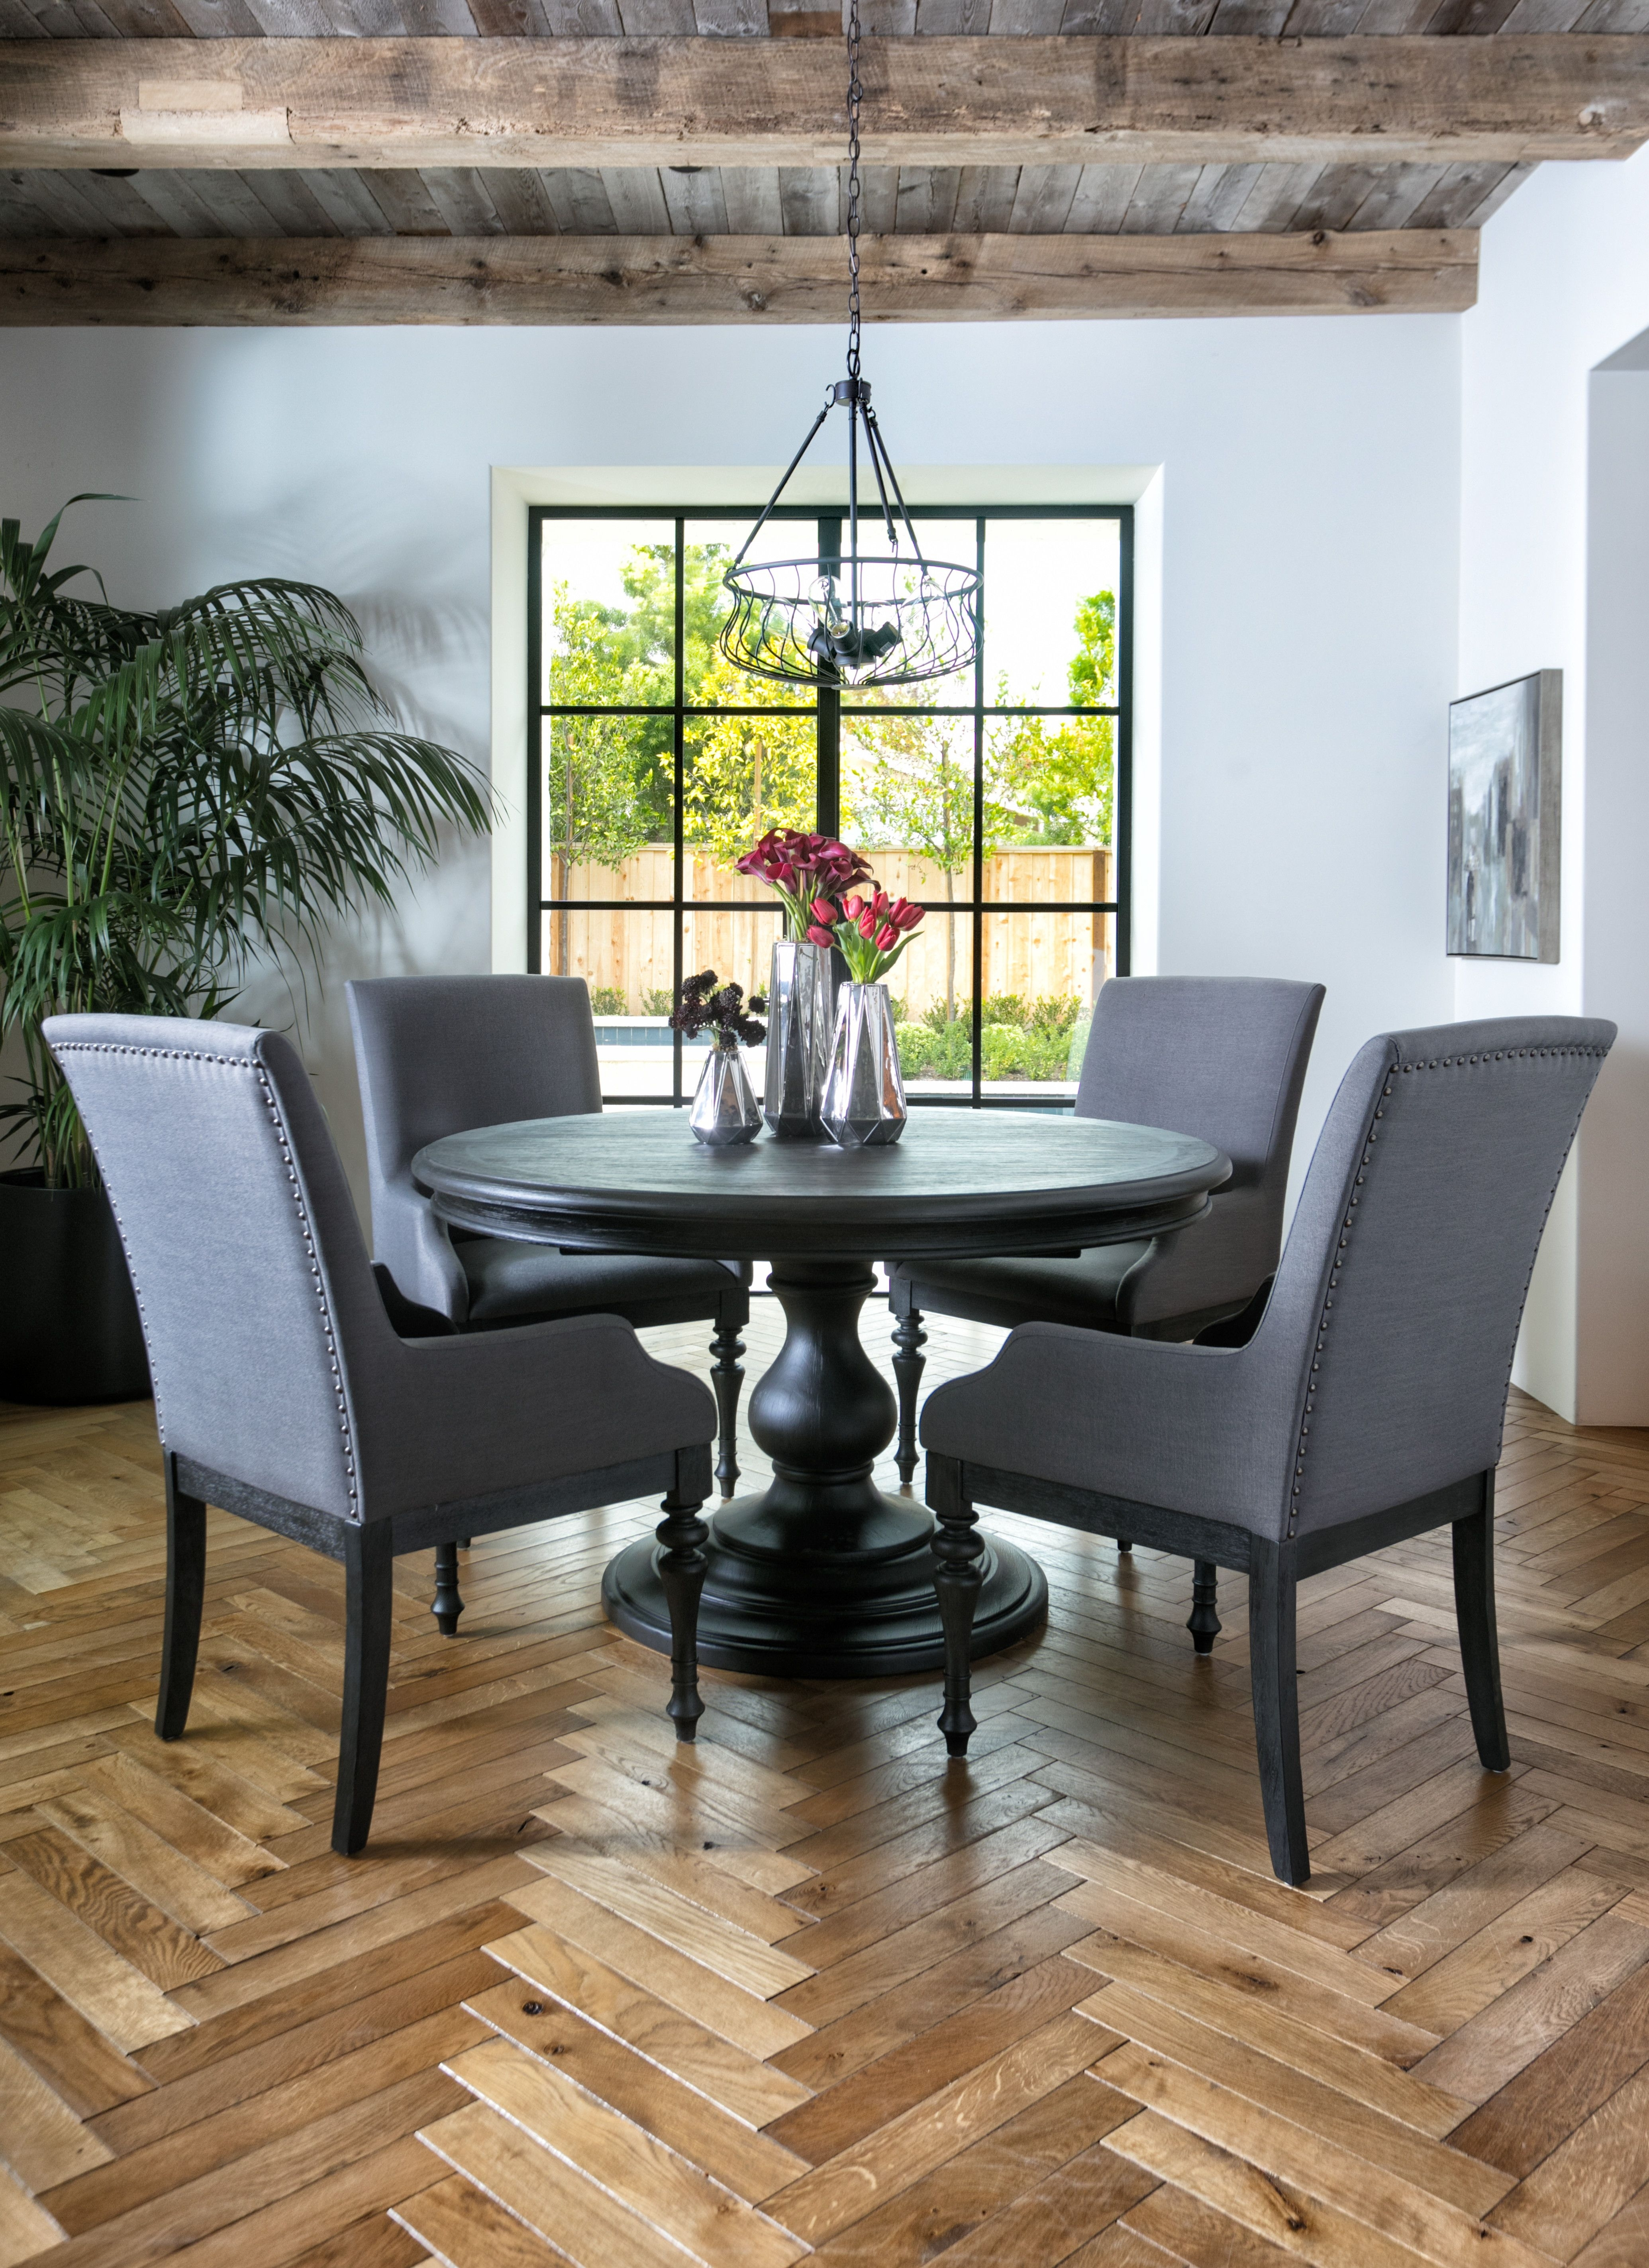 Caira Black 5 Piece Round Dining Set With Diamond Back Side Chairs Inside 2017 Caira Black 7 Piece Dining Sets With Upholstered Side Chairs (Image 5 of 20)